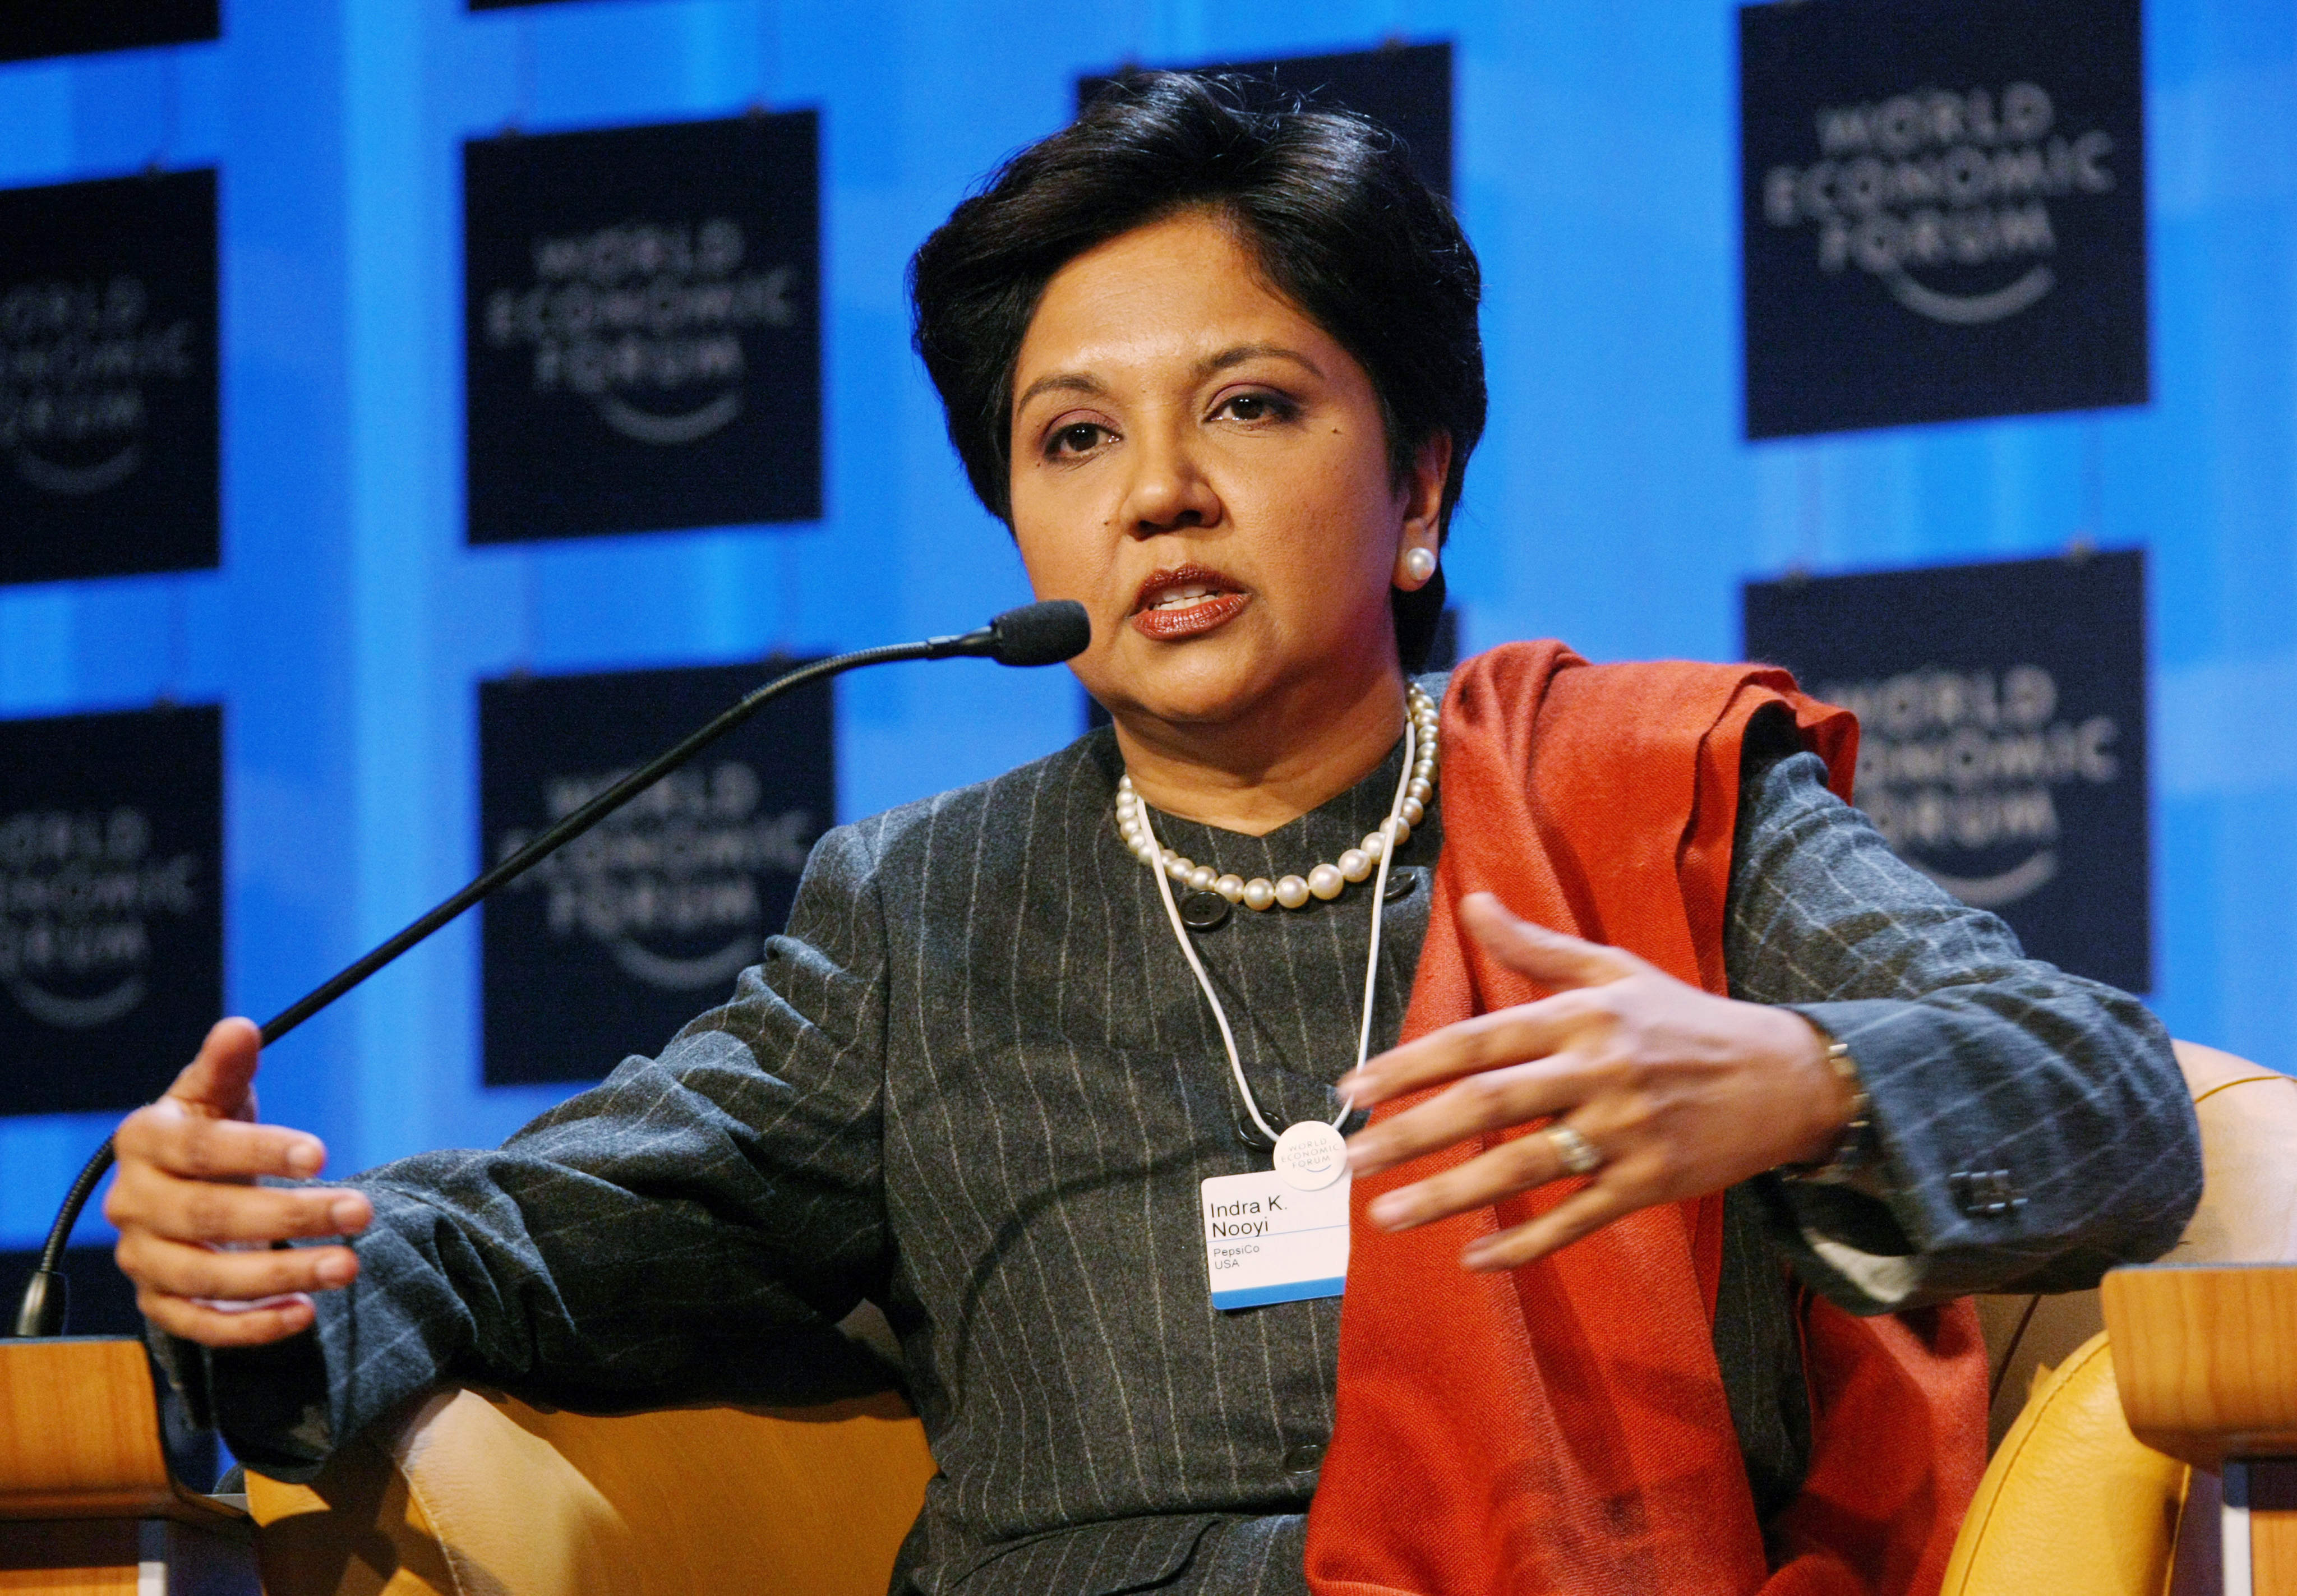 Impression of the Annual Meeting 2008: Indra K. Nooyi